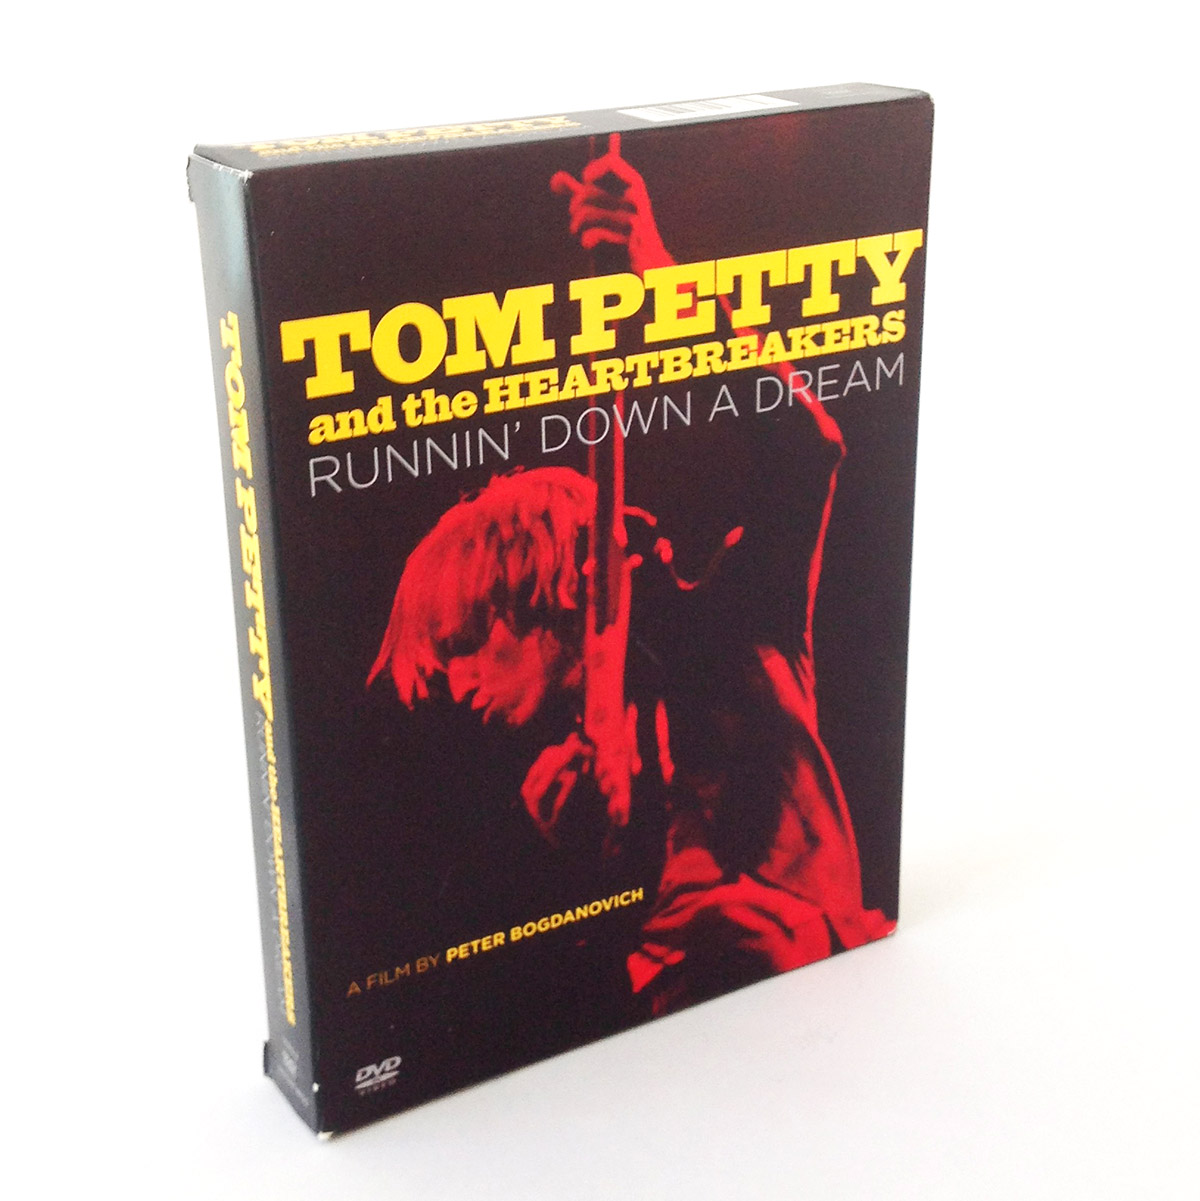 Tom Petty Boxset - Get Best DVD Replication by OMM